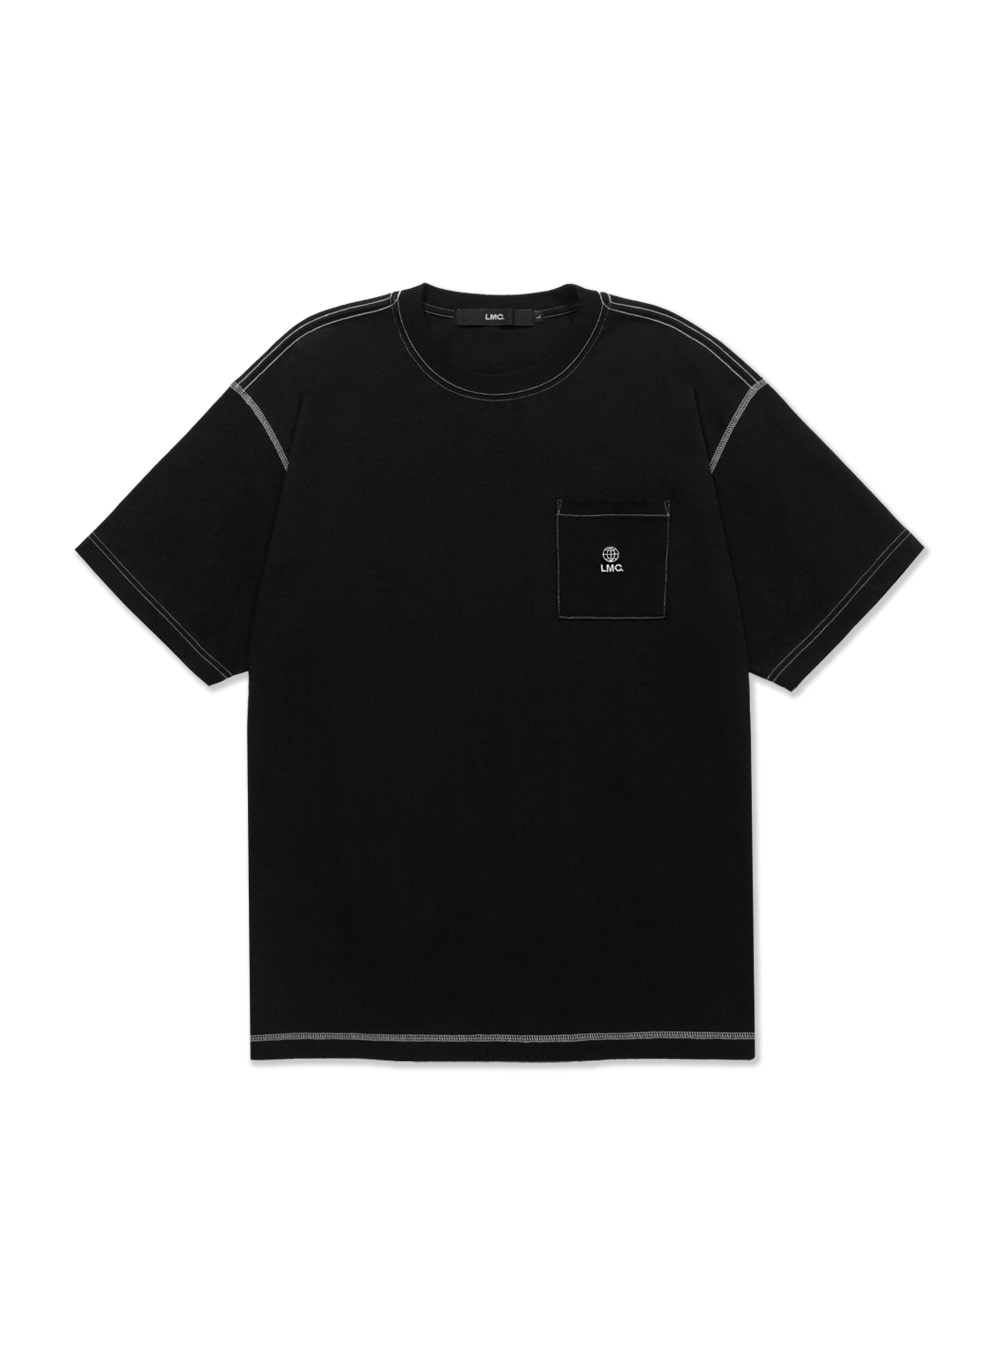 LMC CONTRAST STITCH POCKET TEE black